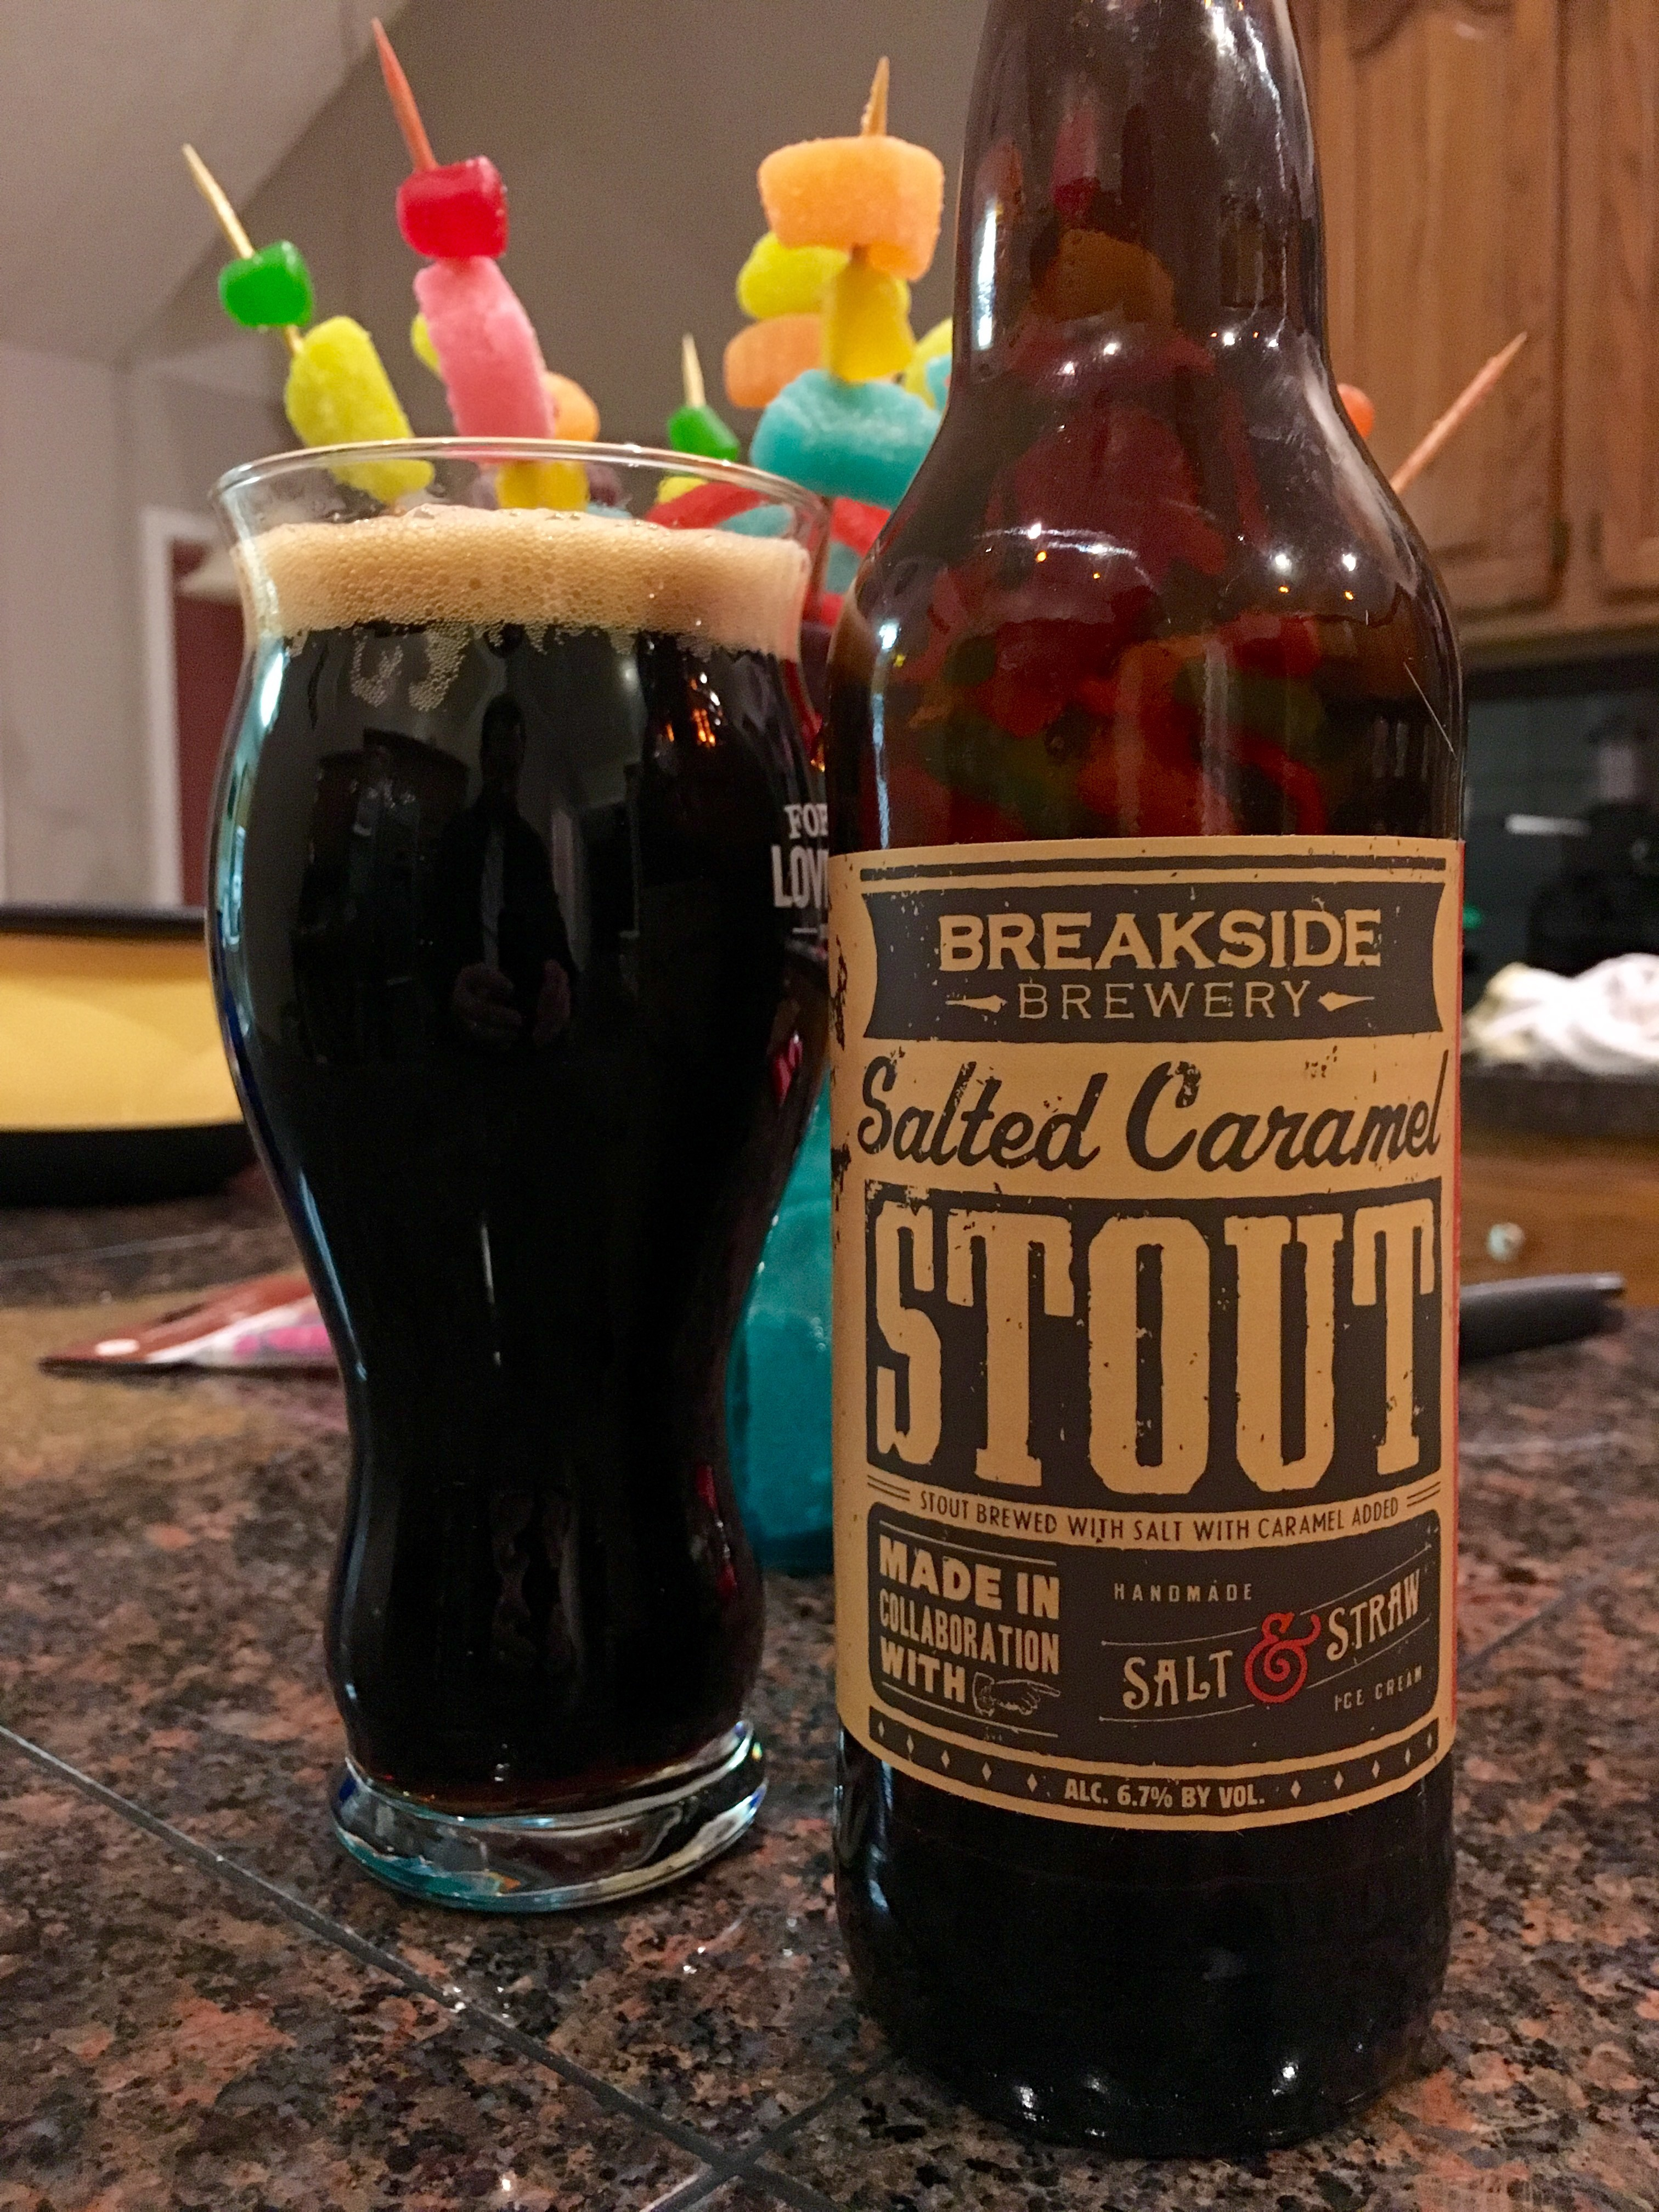 810. Breakside Brewery - Salted Caramel Stout